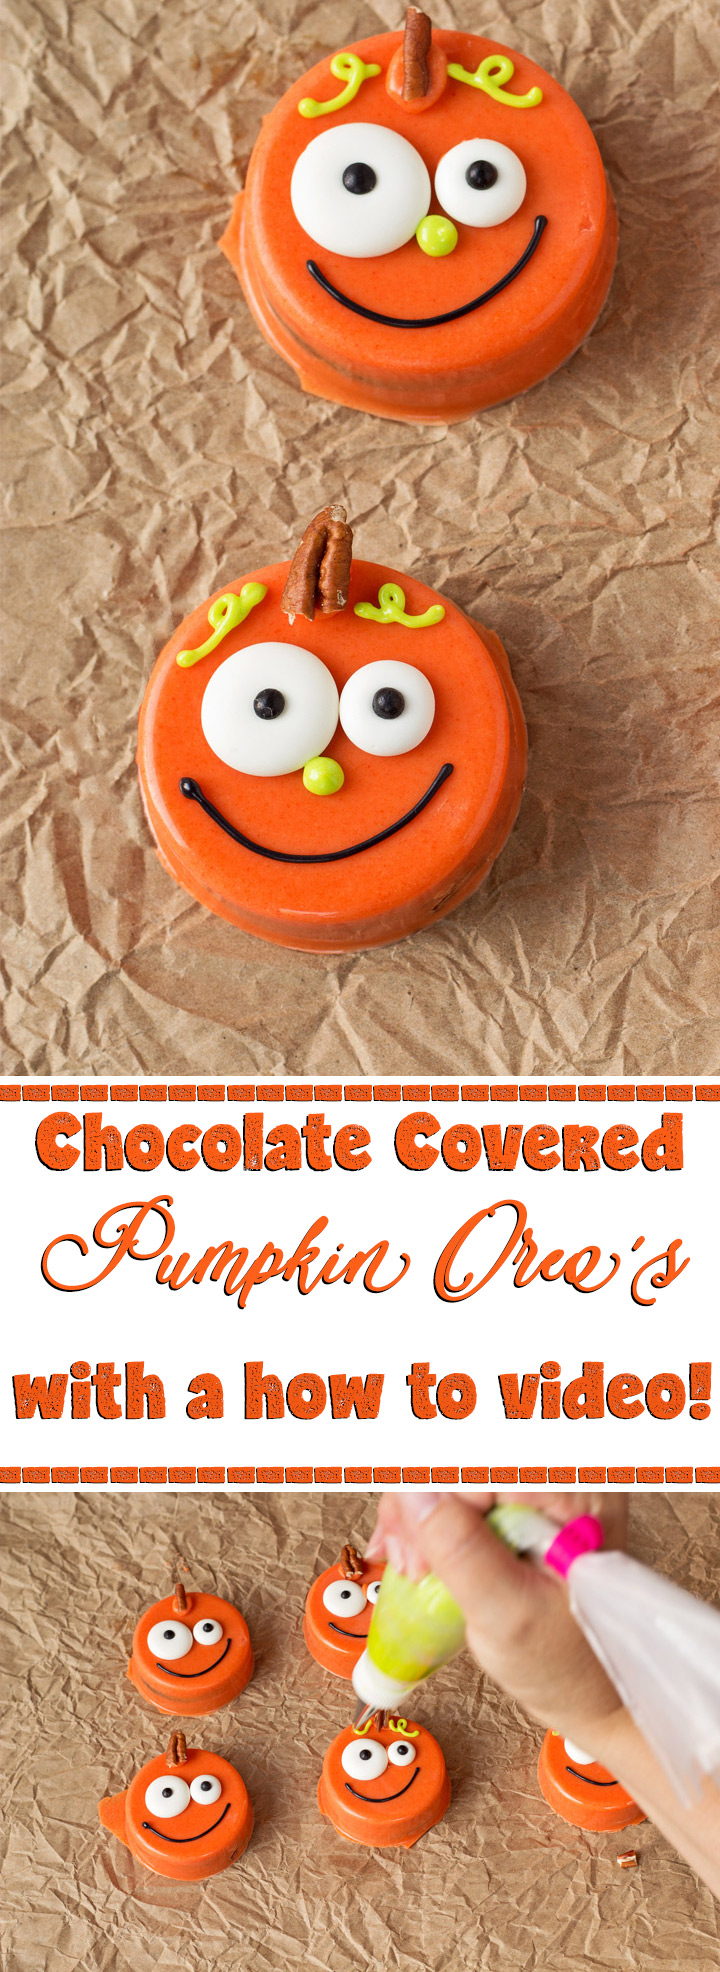 How to Make Chocolate Covered Pumpkin Oreo's with Video | The ...